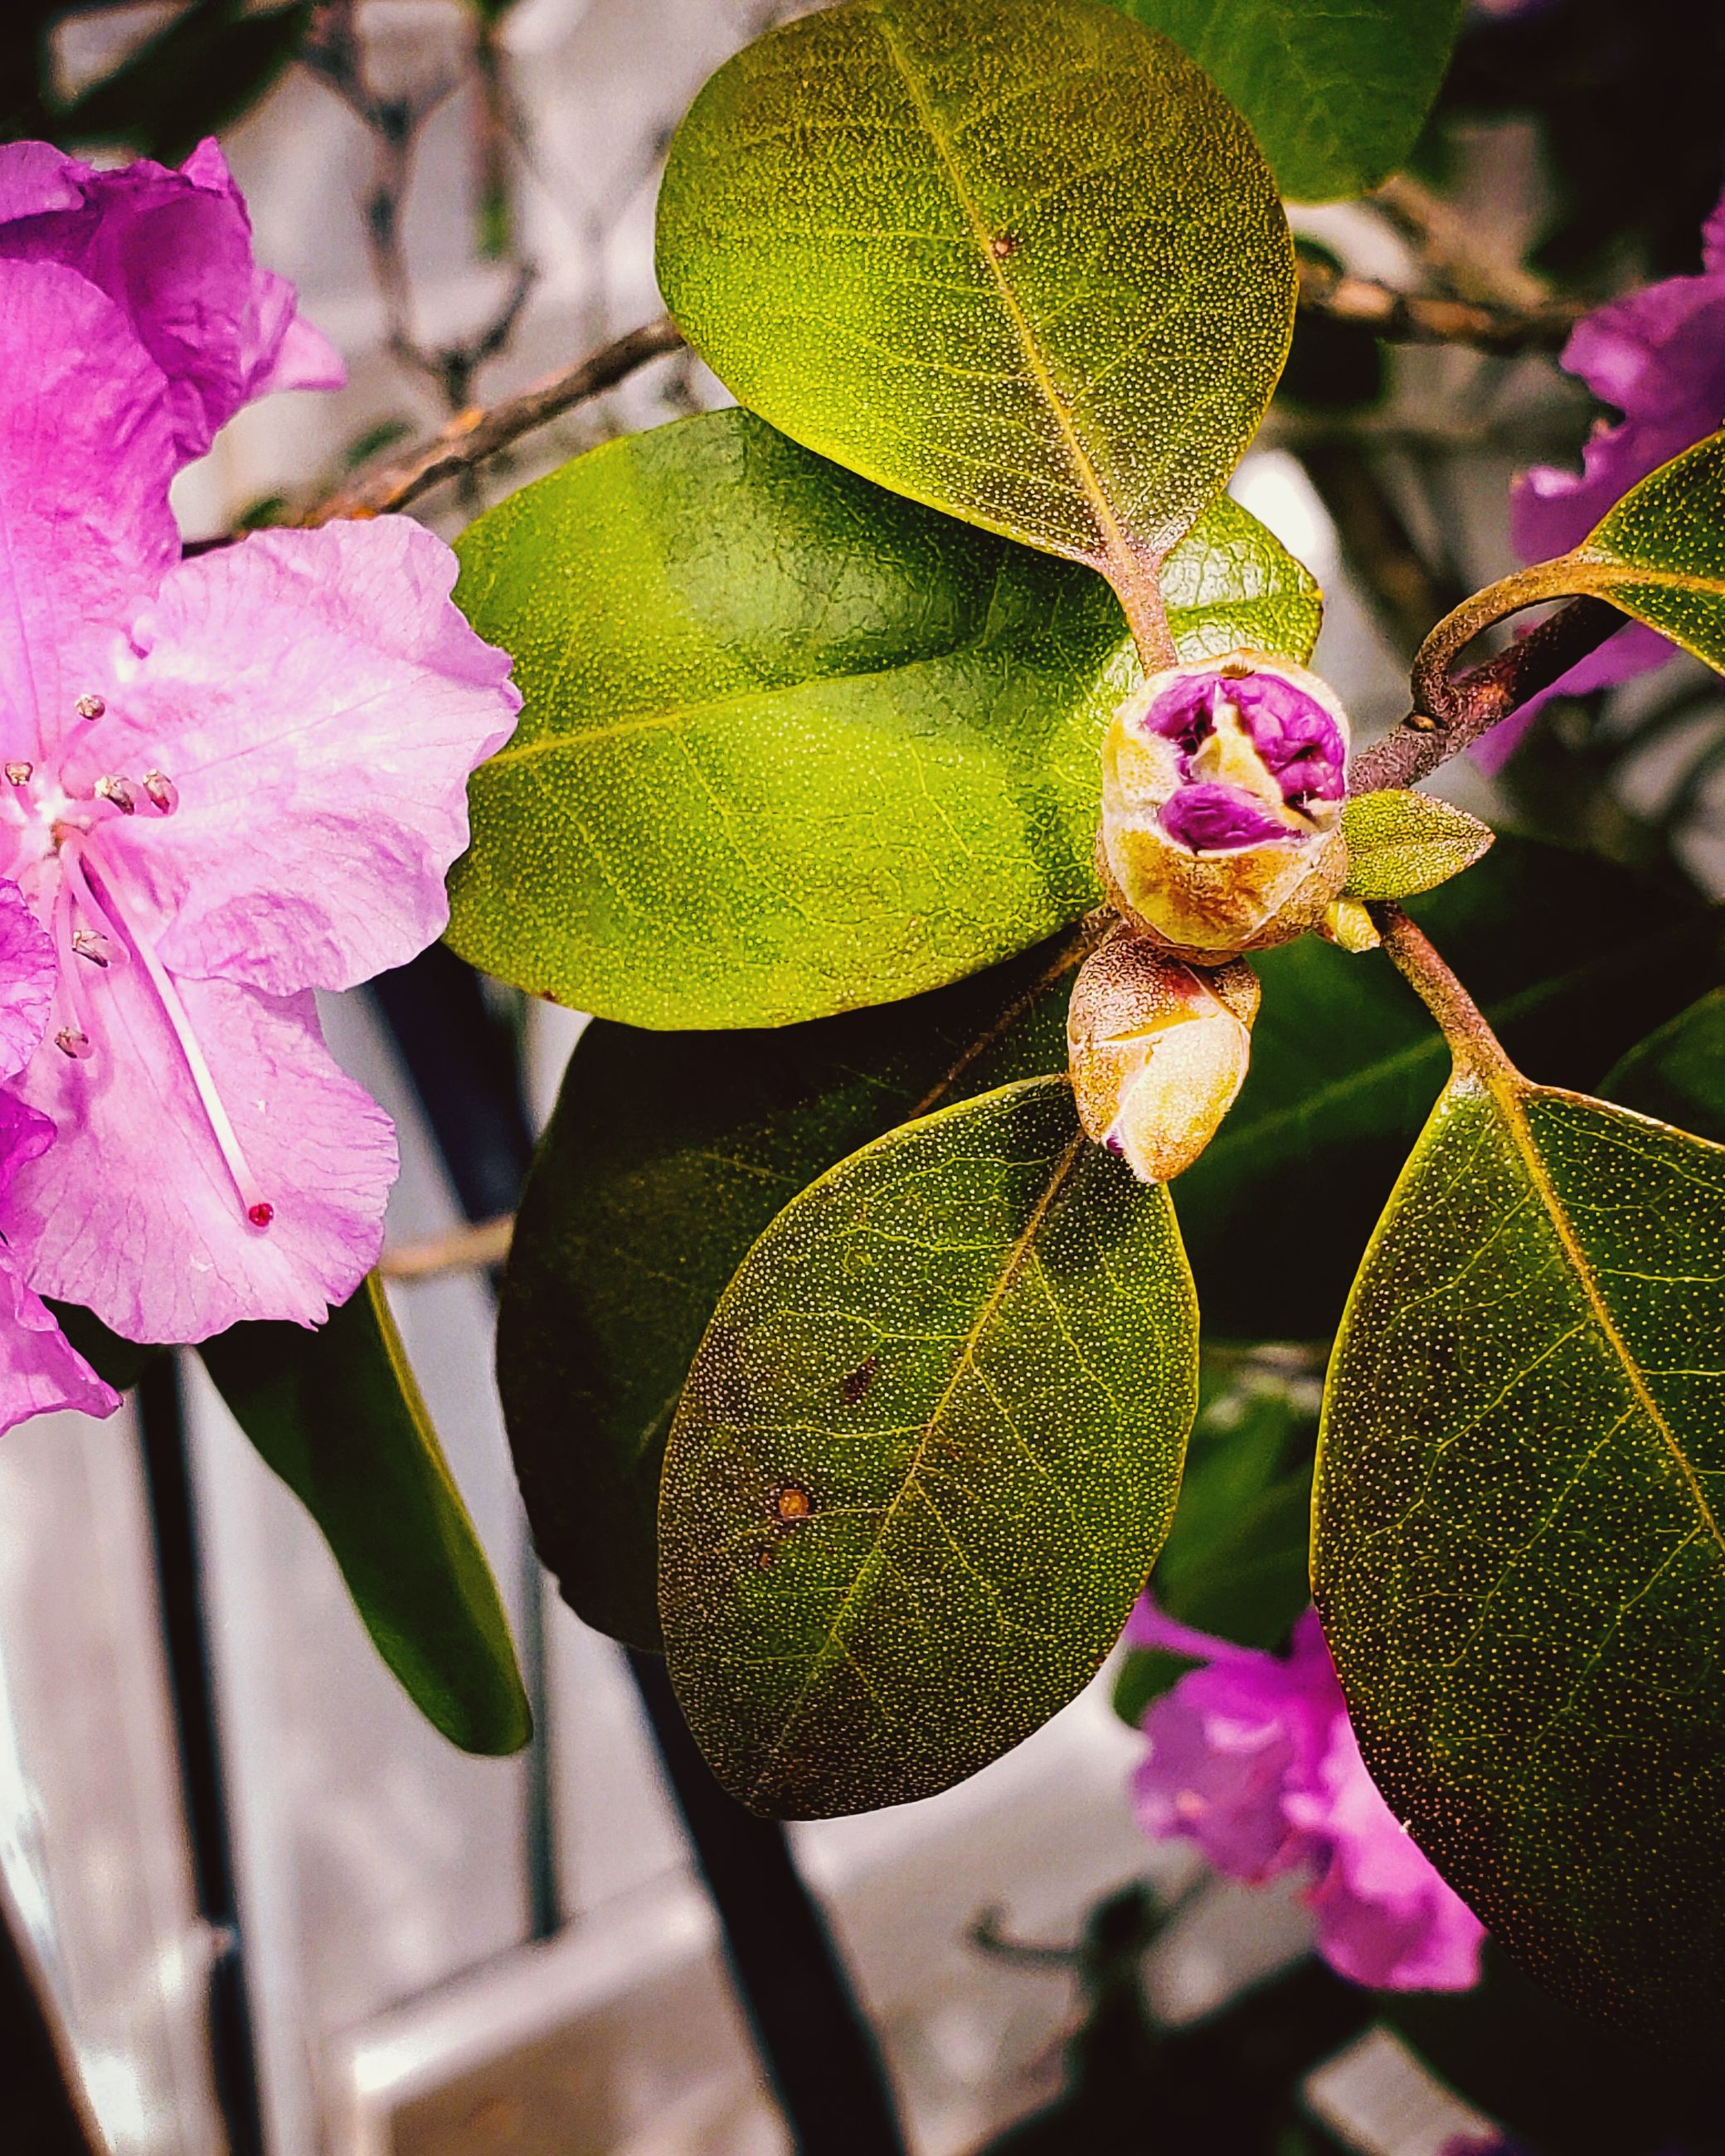 plant, flowering plant, flower, plant part, leaf, growth, beauty in nature, freshness, vulnerability, pink color, close-up, fragility, petal, focus on foreground, nature, no people, flower head, day, inflorescence, green color, purple, outdoors